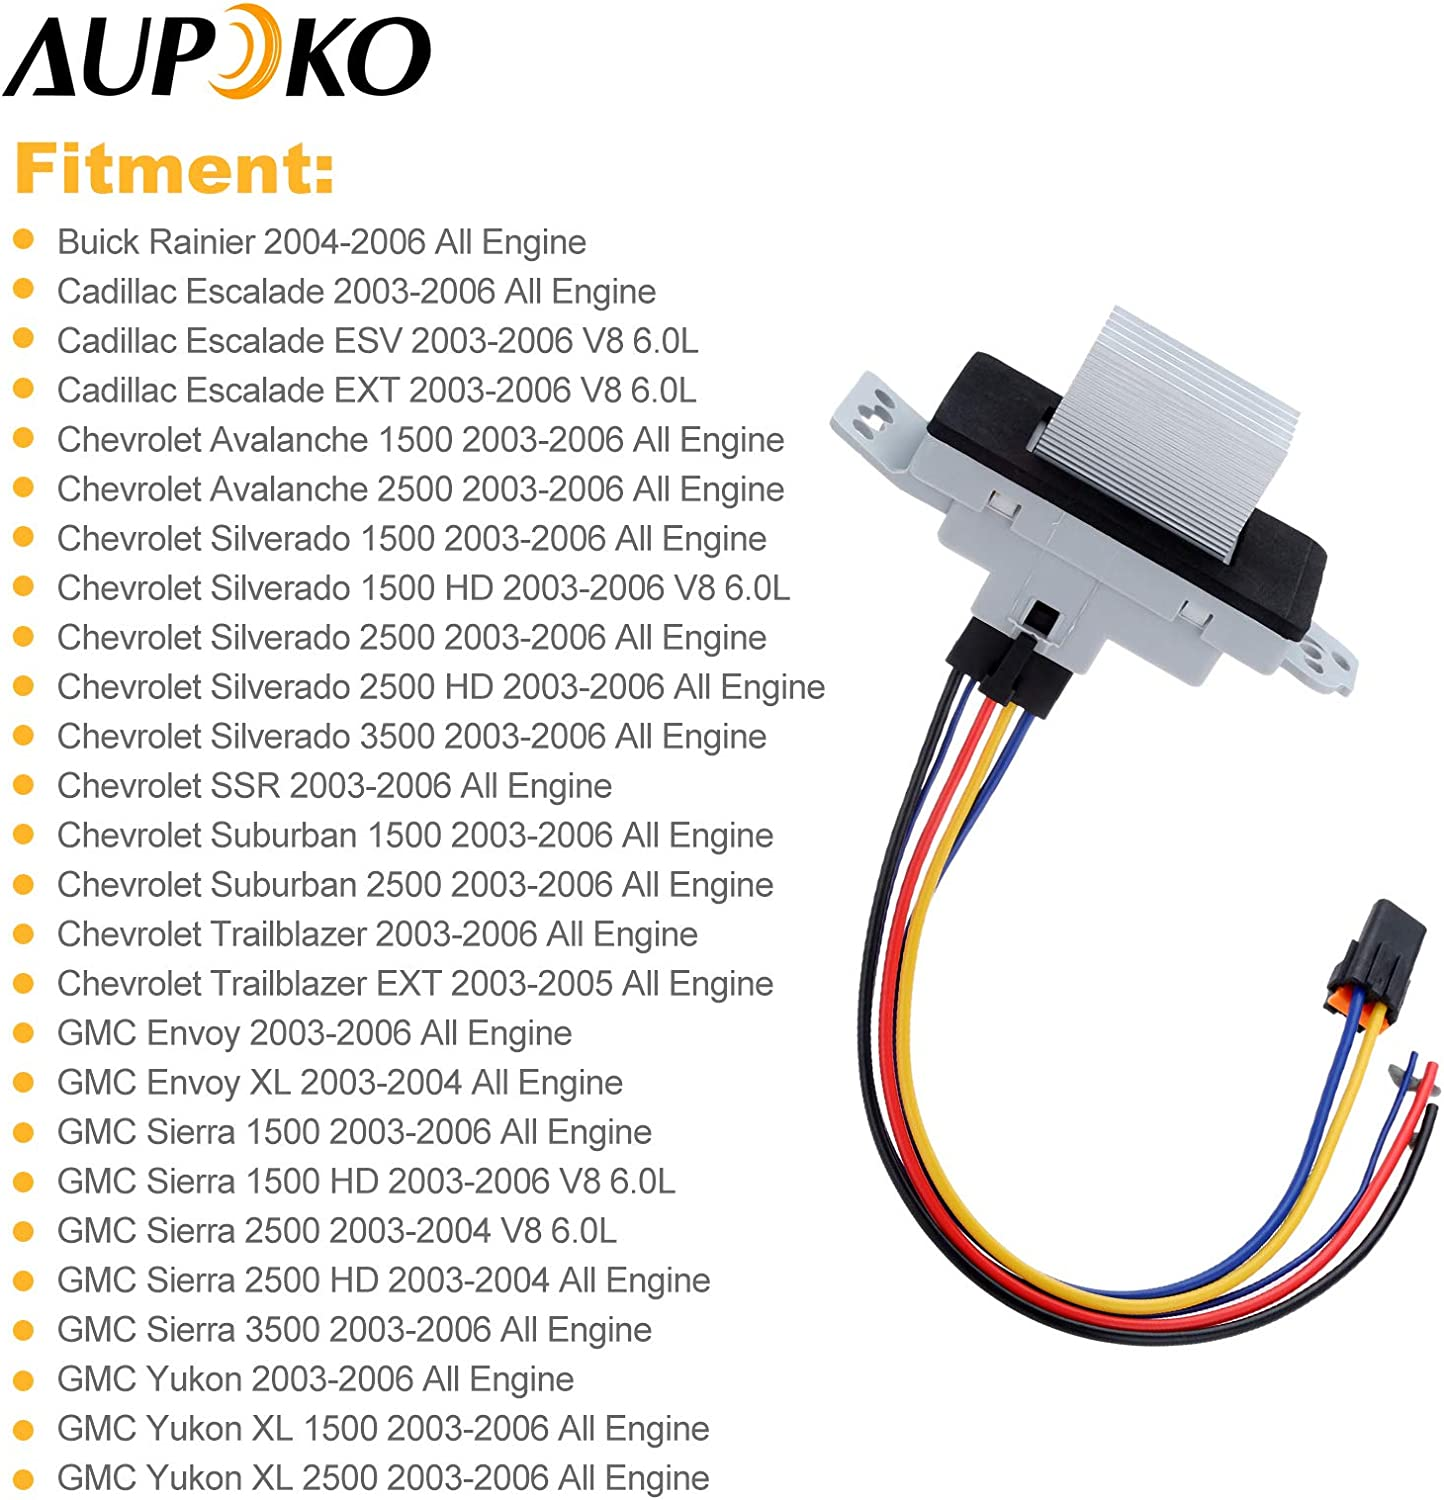 89019351,19260762,15-80567 AC Blower Motor Resistor Kit Replaces 15-81773 Fits for Buick Rainier Cadillac Chevrolet GMC Aupoko 89018778 Blower Motor Resistor Complete Kit with Harness 89019351